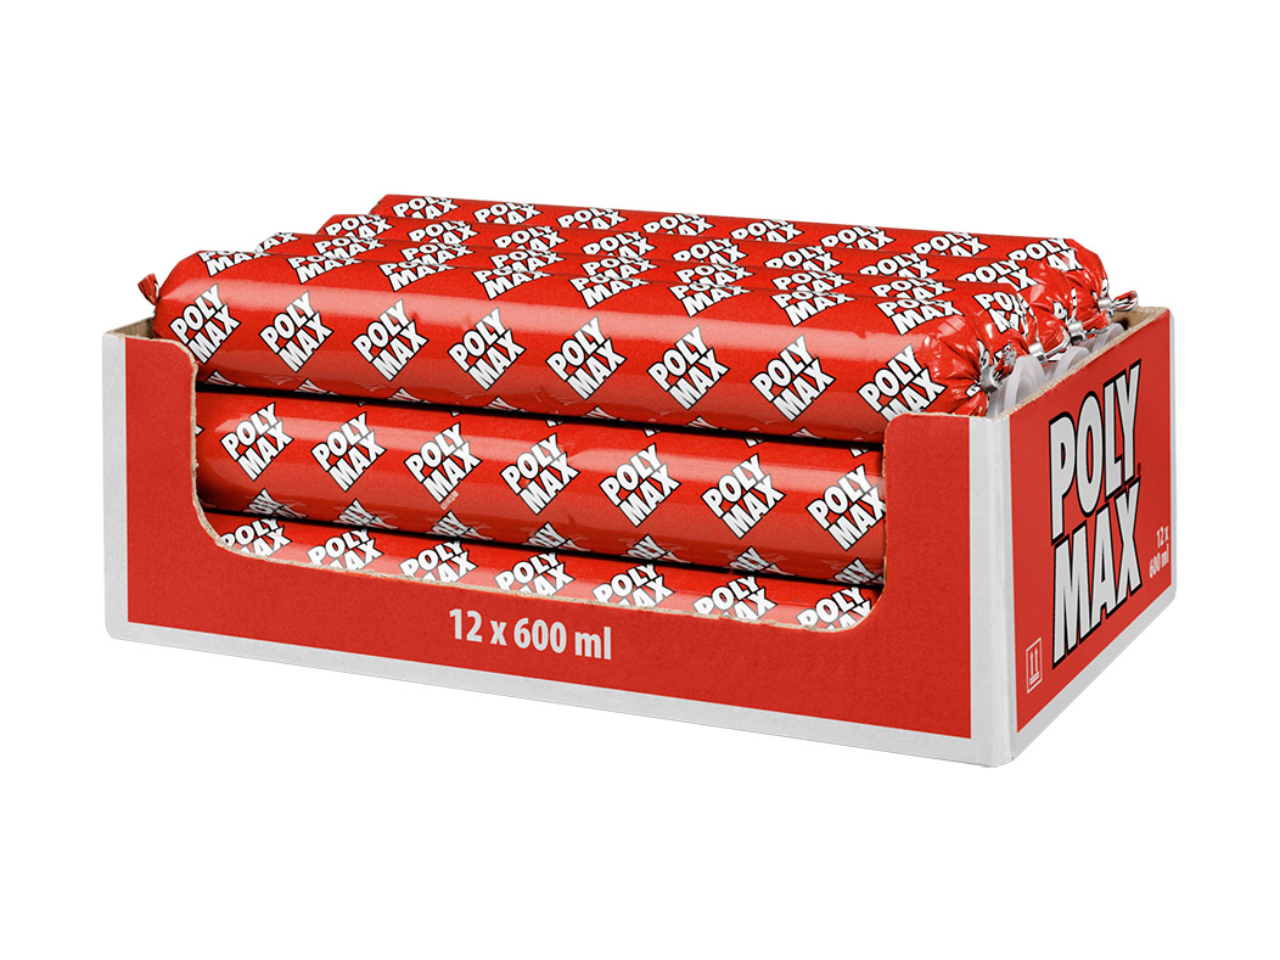 POLY MAX® NOW AVAILABLE IN XXL SAUSAGE PACKAGING